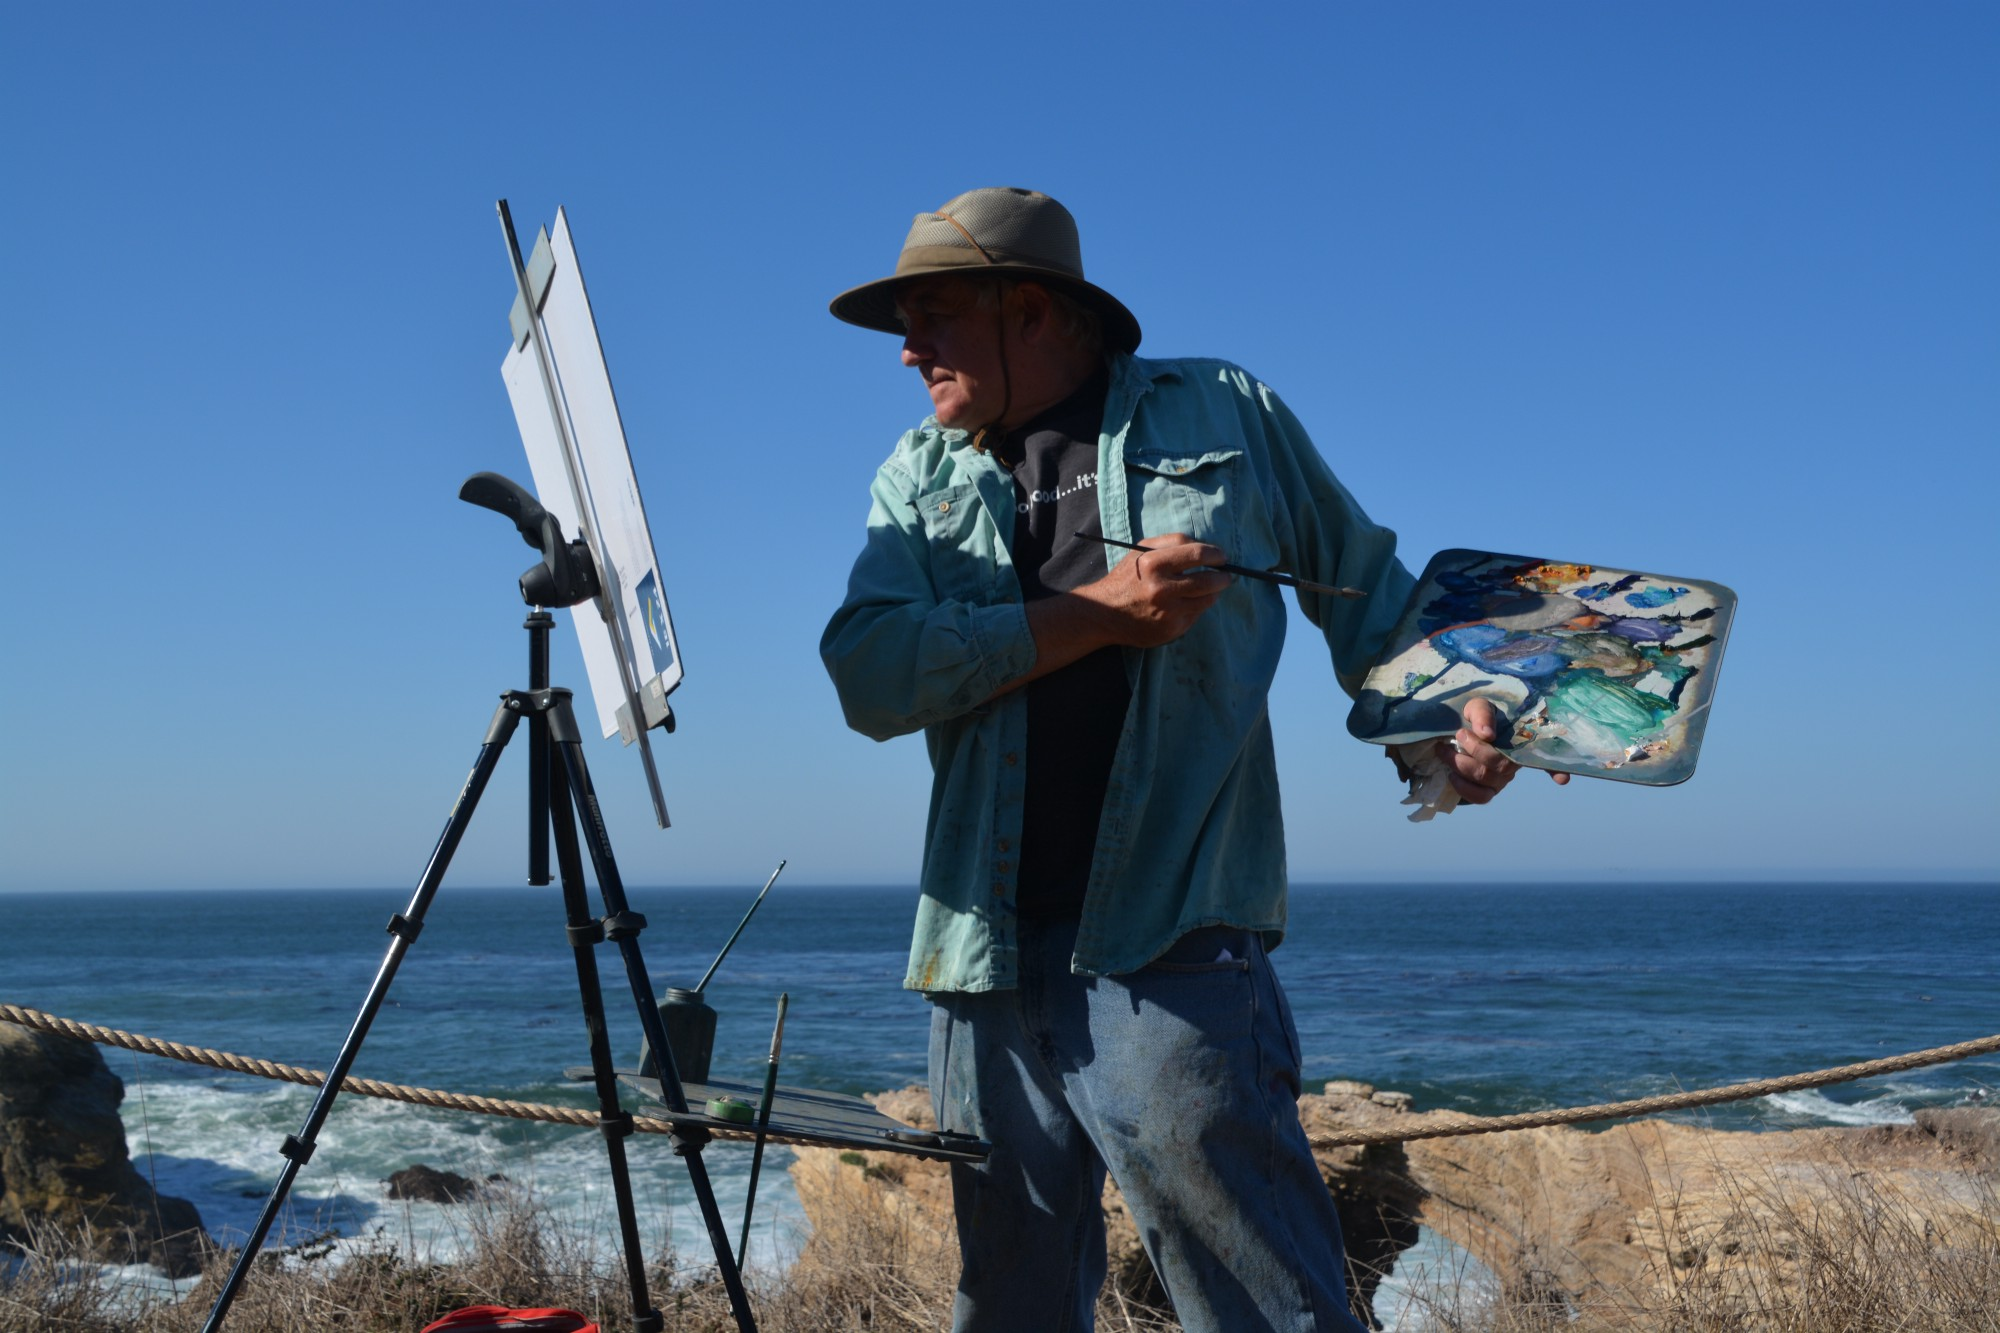 Man along ocean painting on canvas with brush and oil paints.